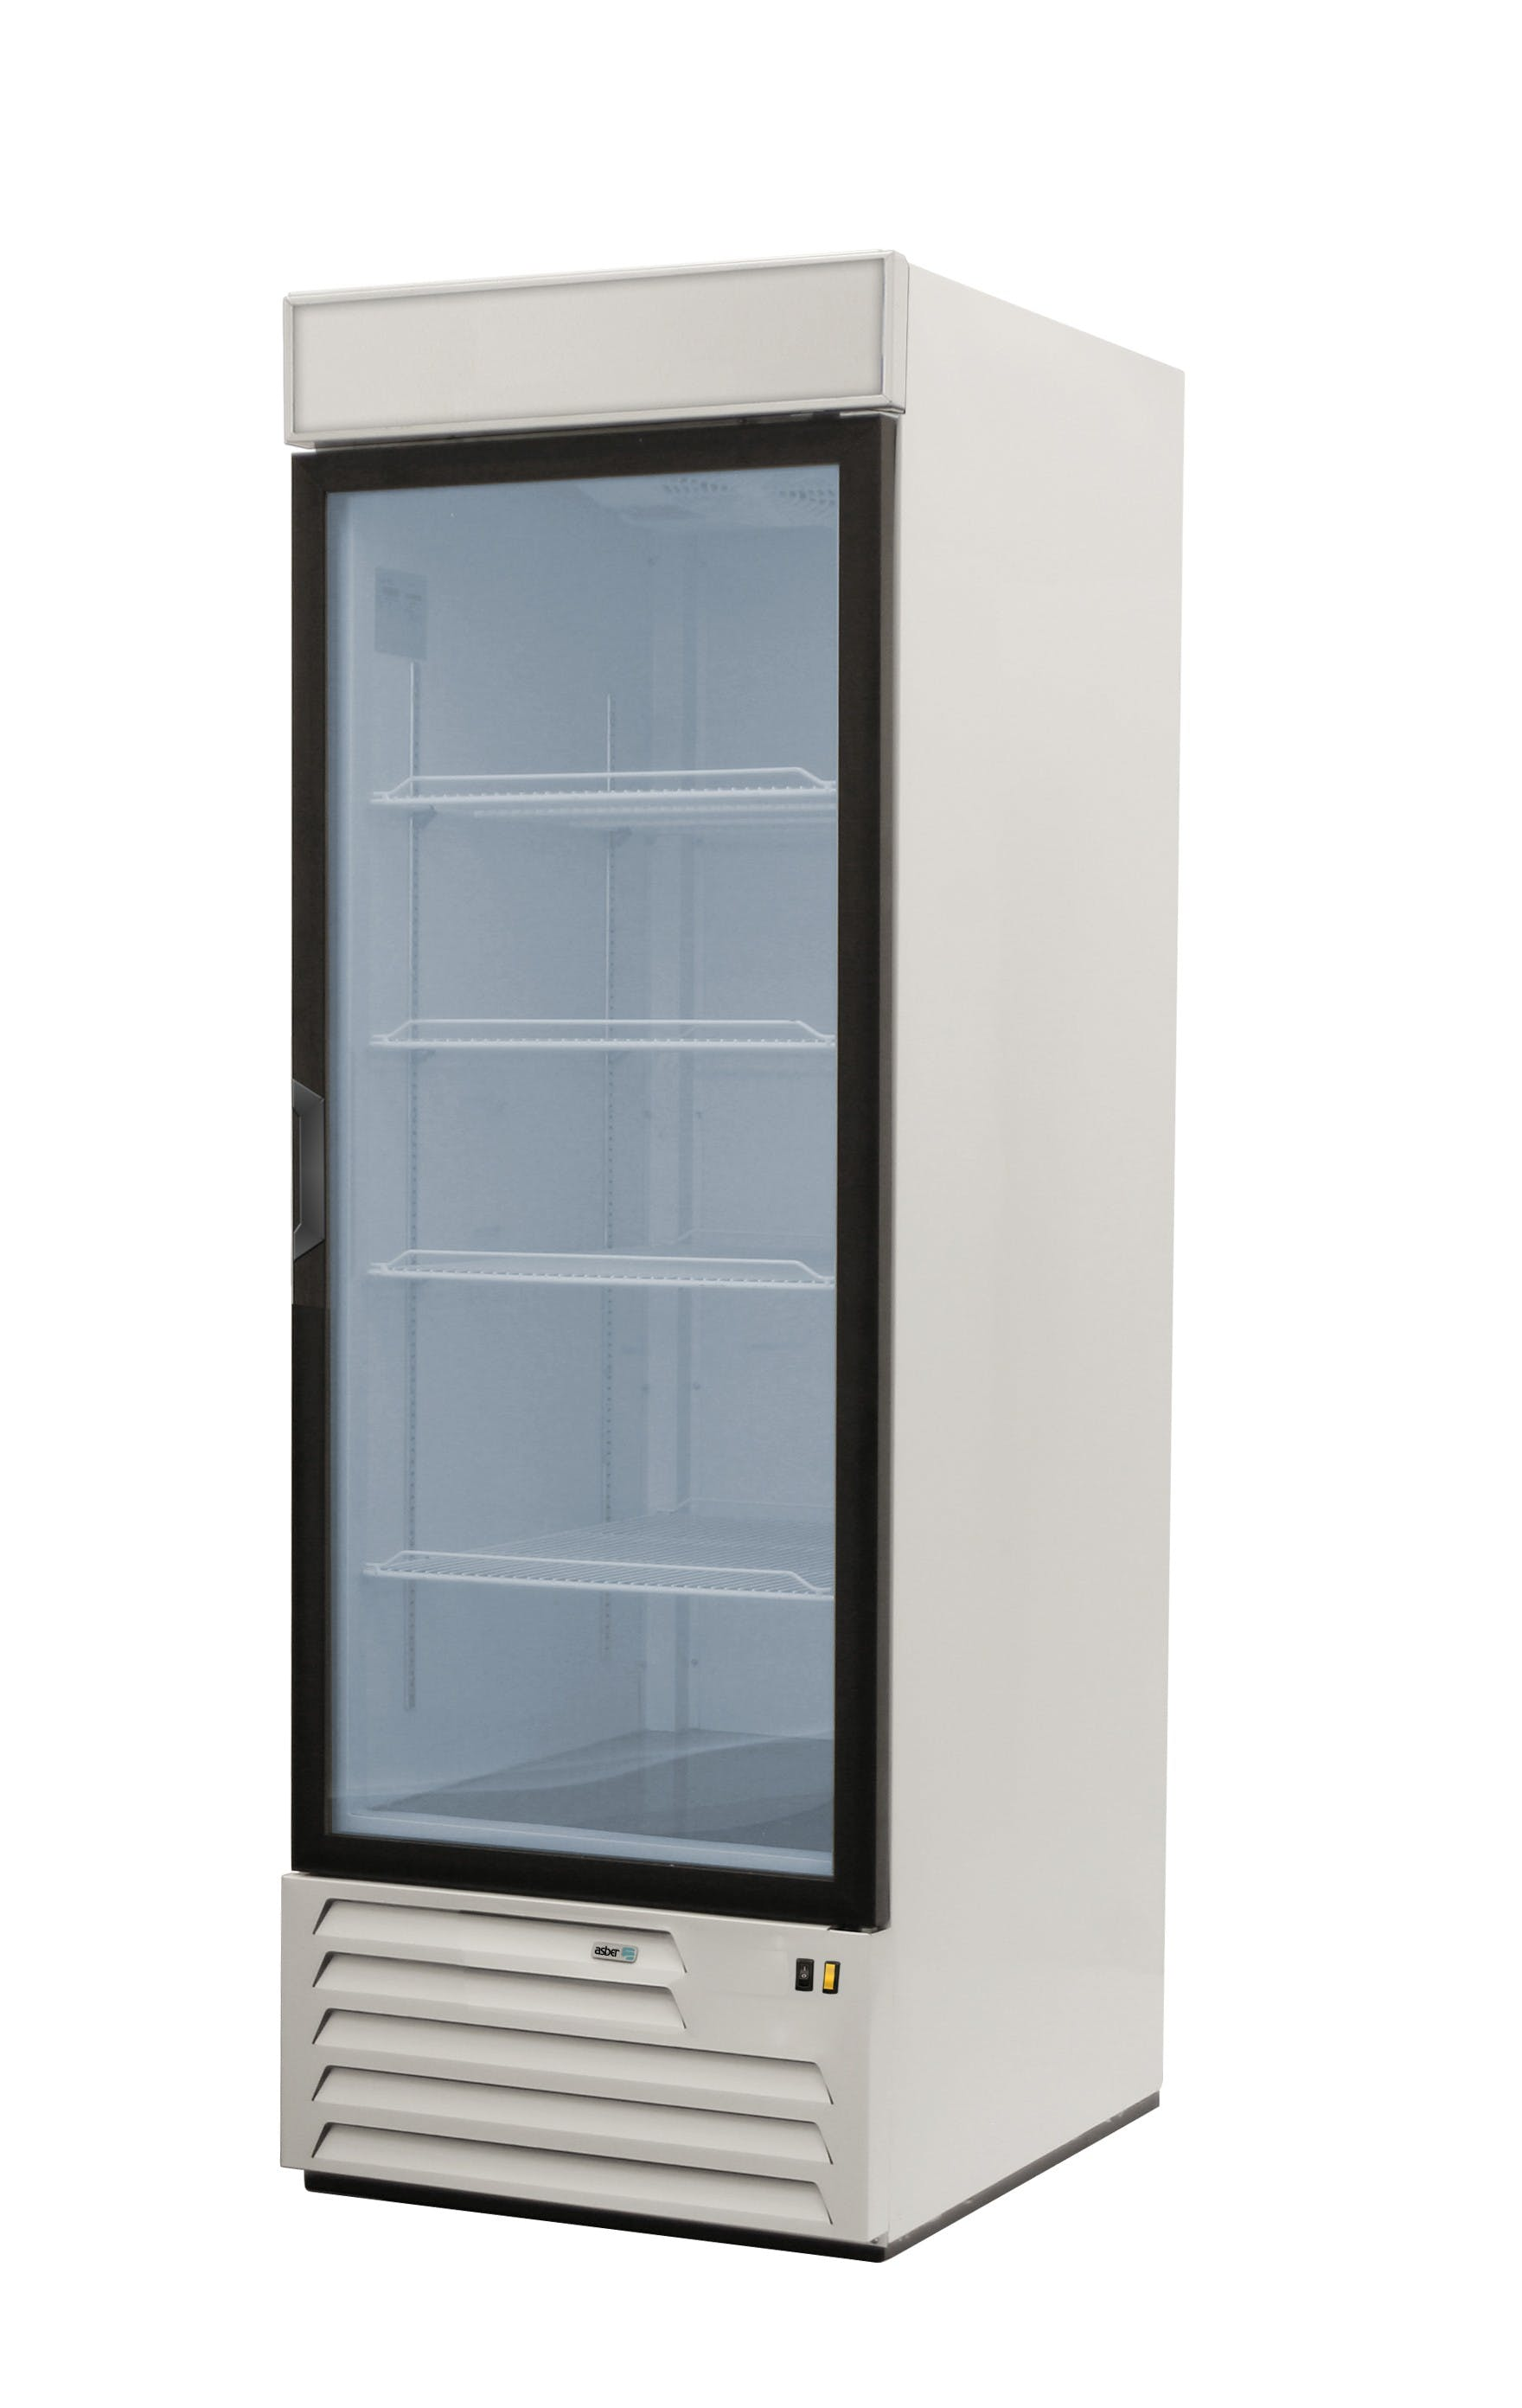 ARMD-23 A: Asber Single glass door Refrigerator Merchandiser